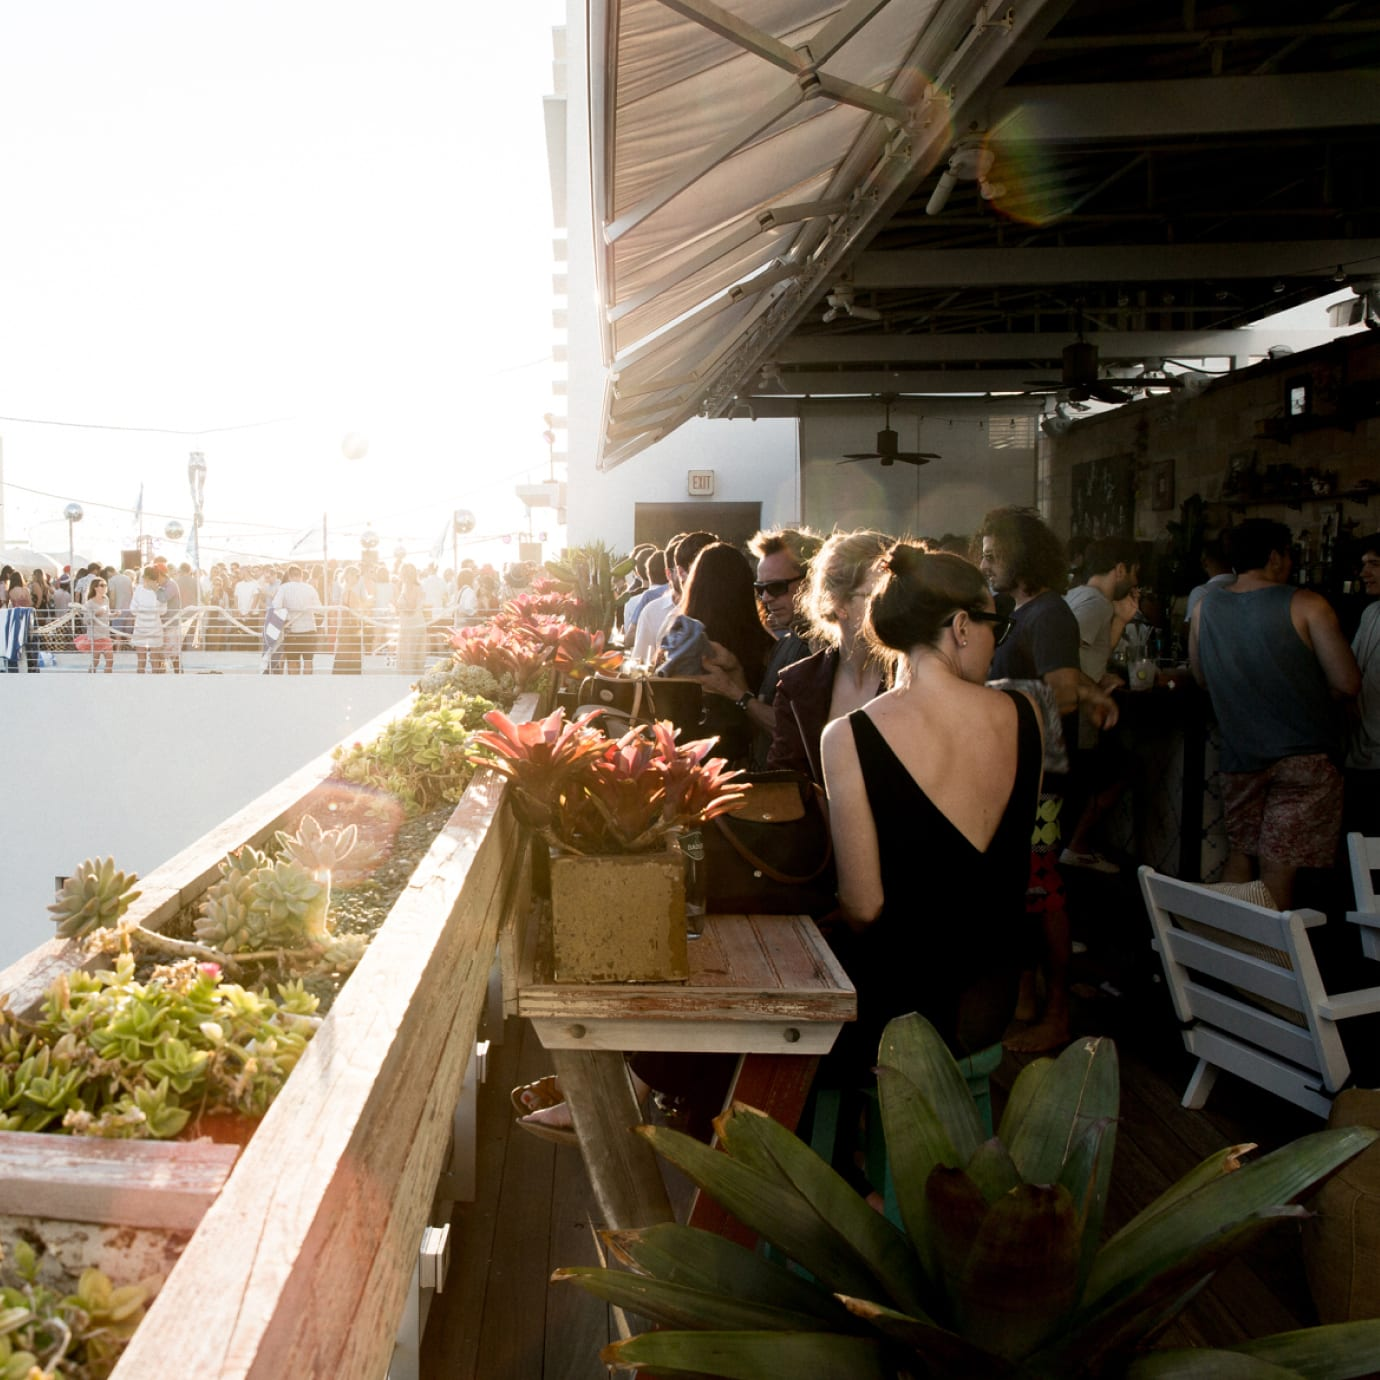 A busy rooftop bar.